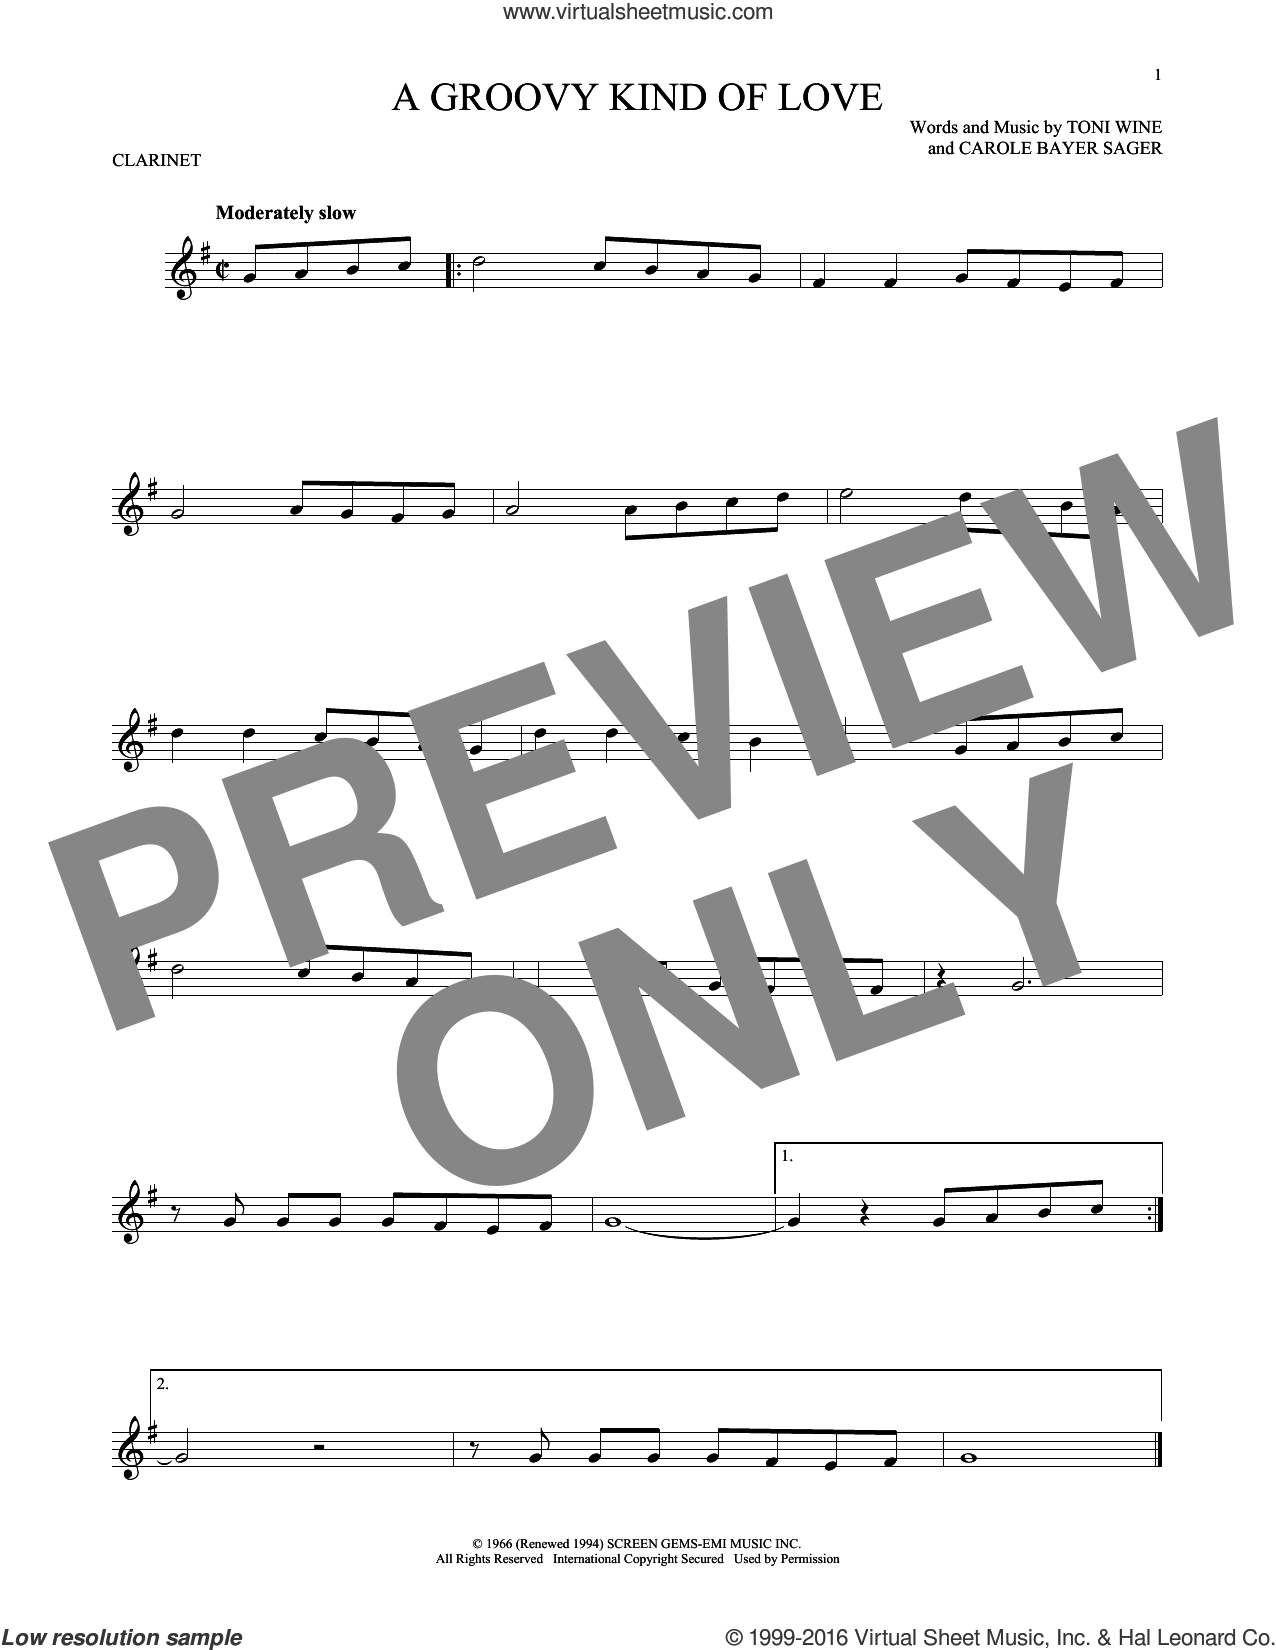 A Groovy Kind Of Love sheet music for clarinet solo by Phil Collins, The Mindbenders, Carole Bayer Sager and Toni Wine, intermediate skill level